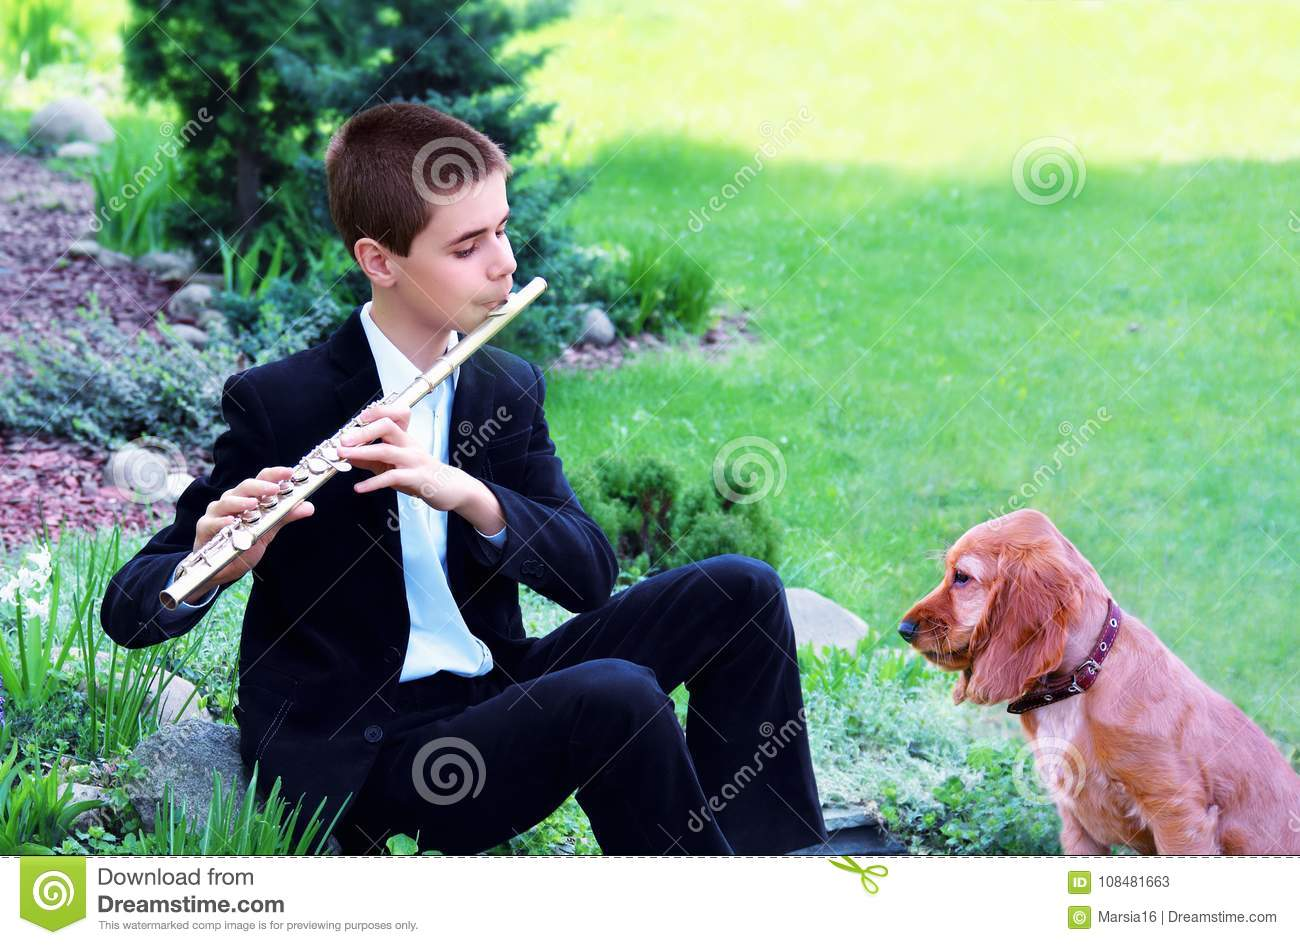 Teenage Boy with Flute and Dog